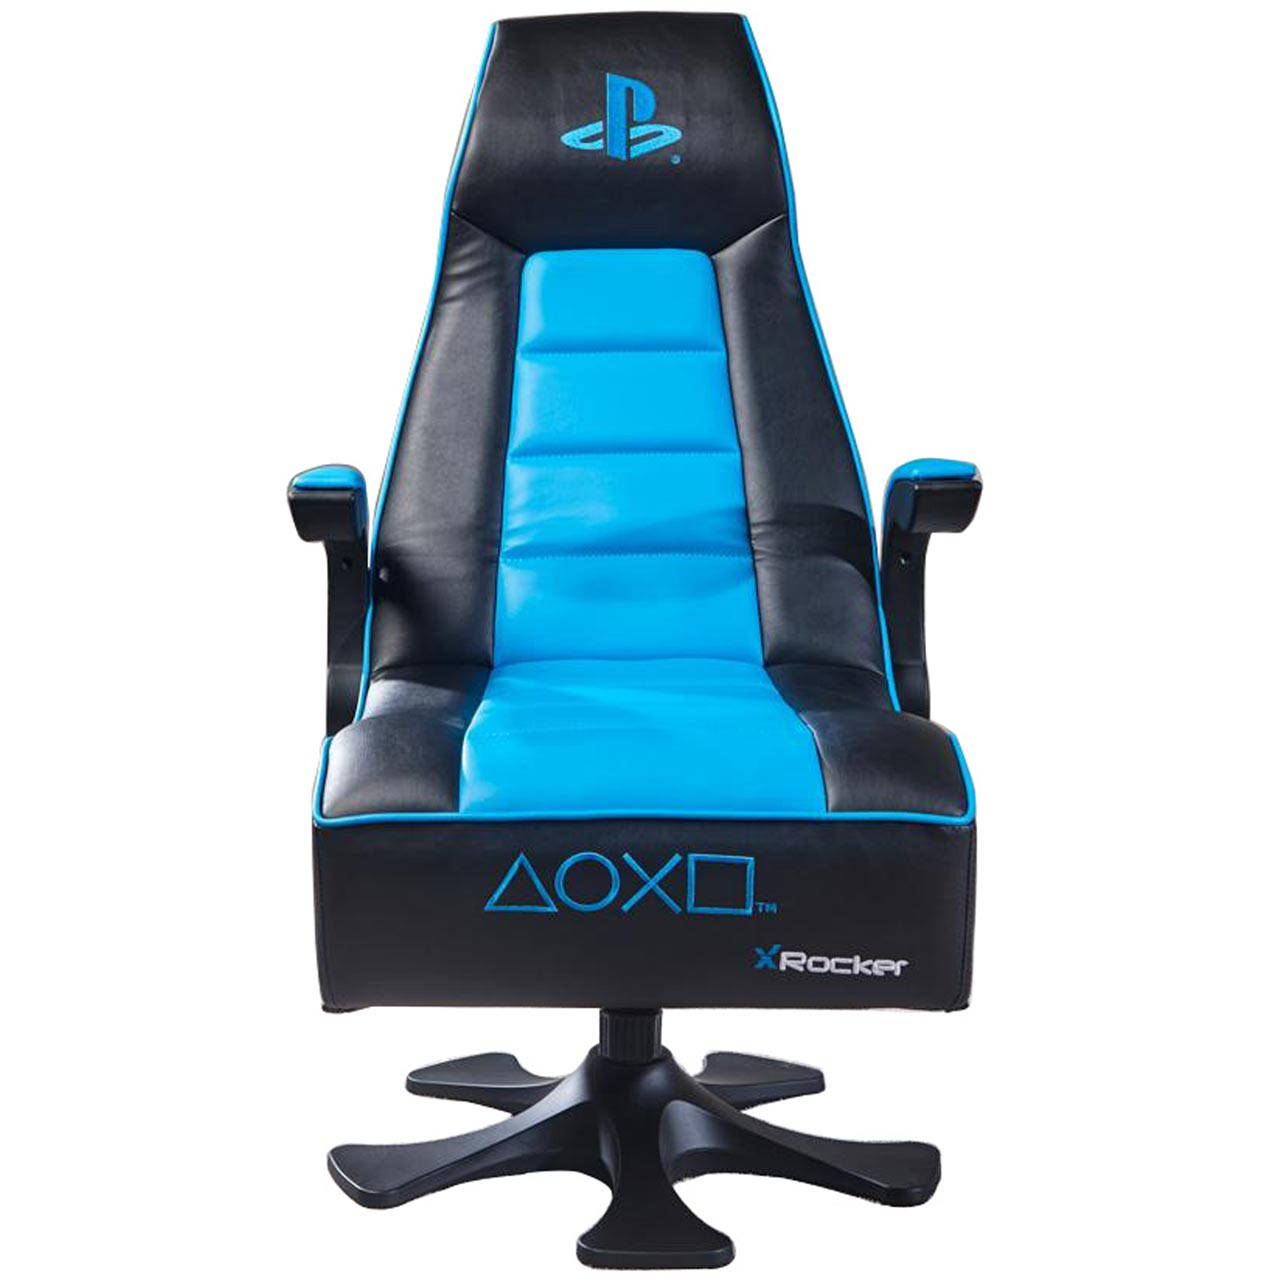 Pleasant X Rocker Wireless Sony Playstation Officially Licensed Infiniti Gaming Chair 2 1 Black Machost Co Dining Chair Design Ideas Machostcouk